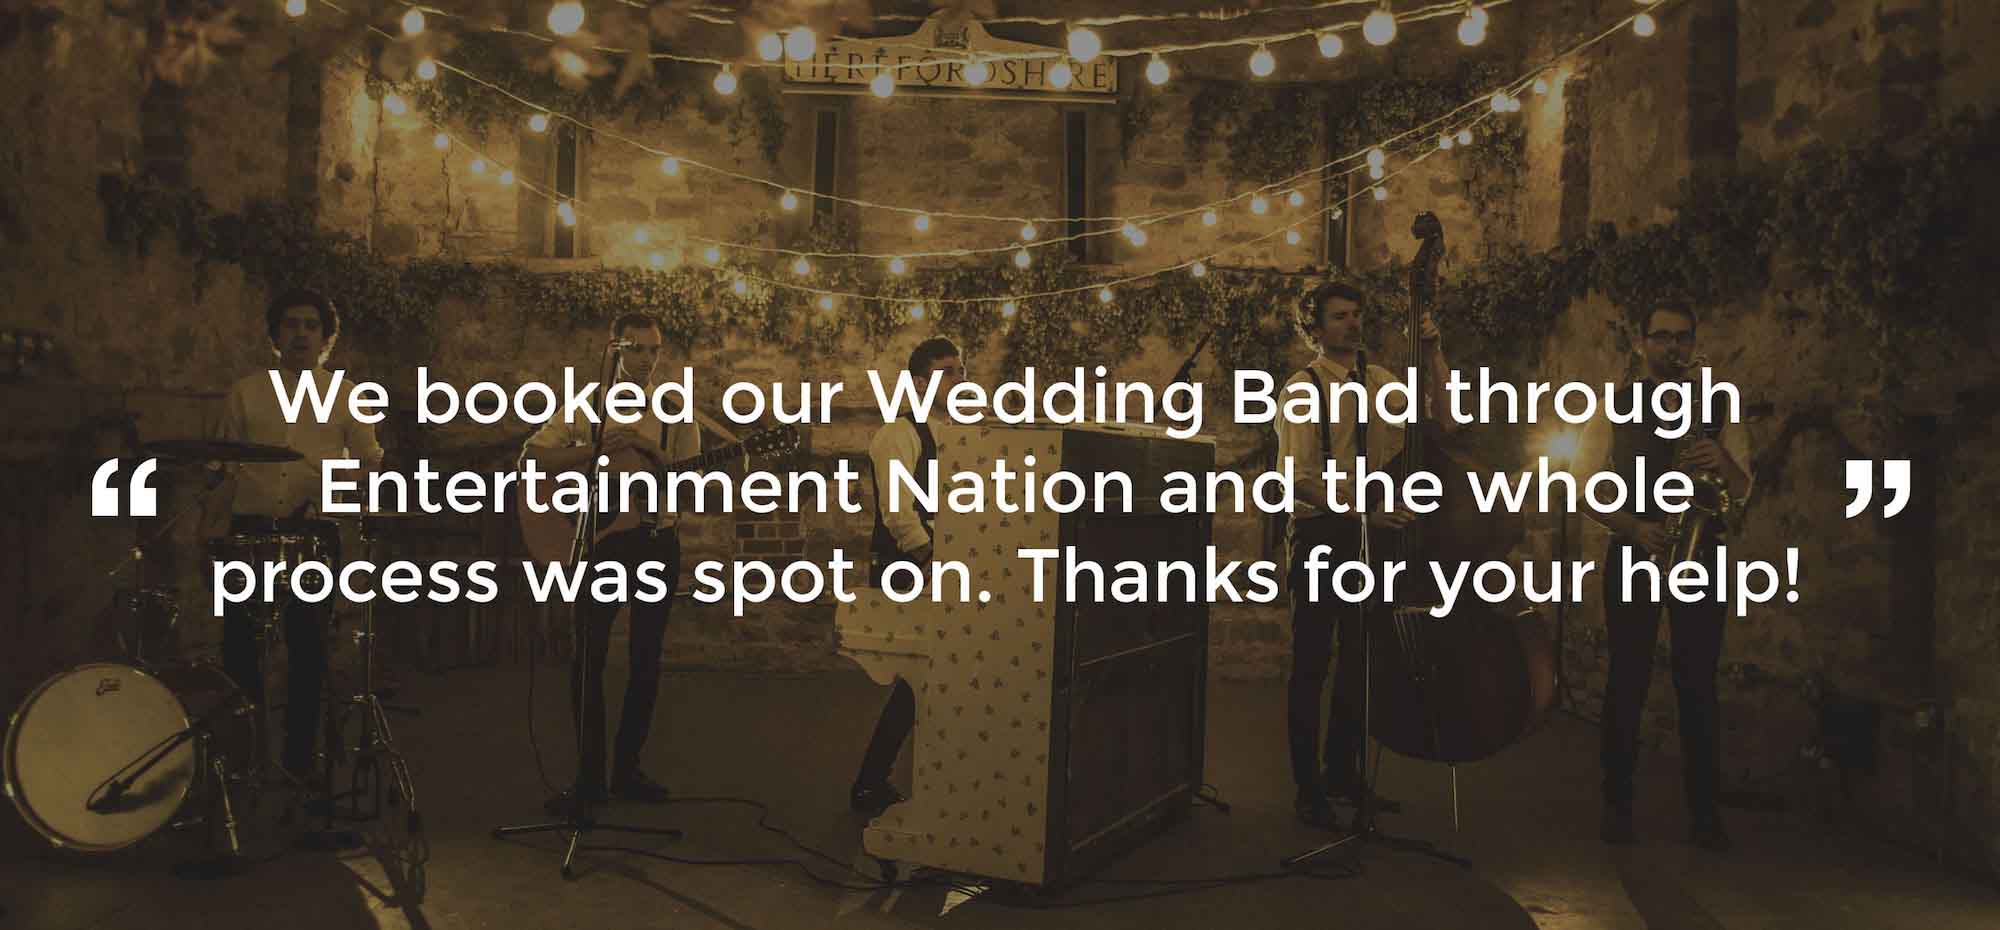 Client Review of a Wedding Band Suffolk